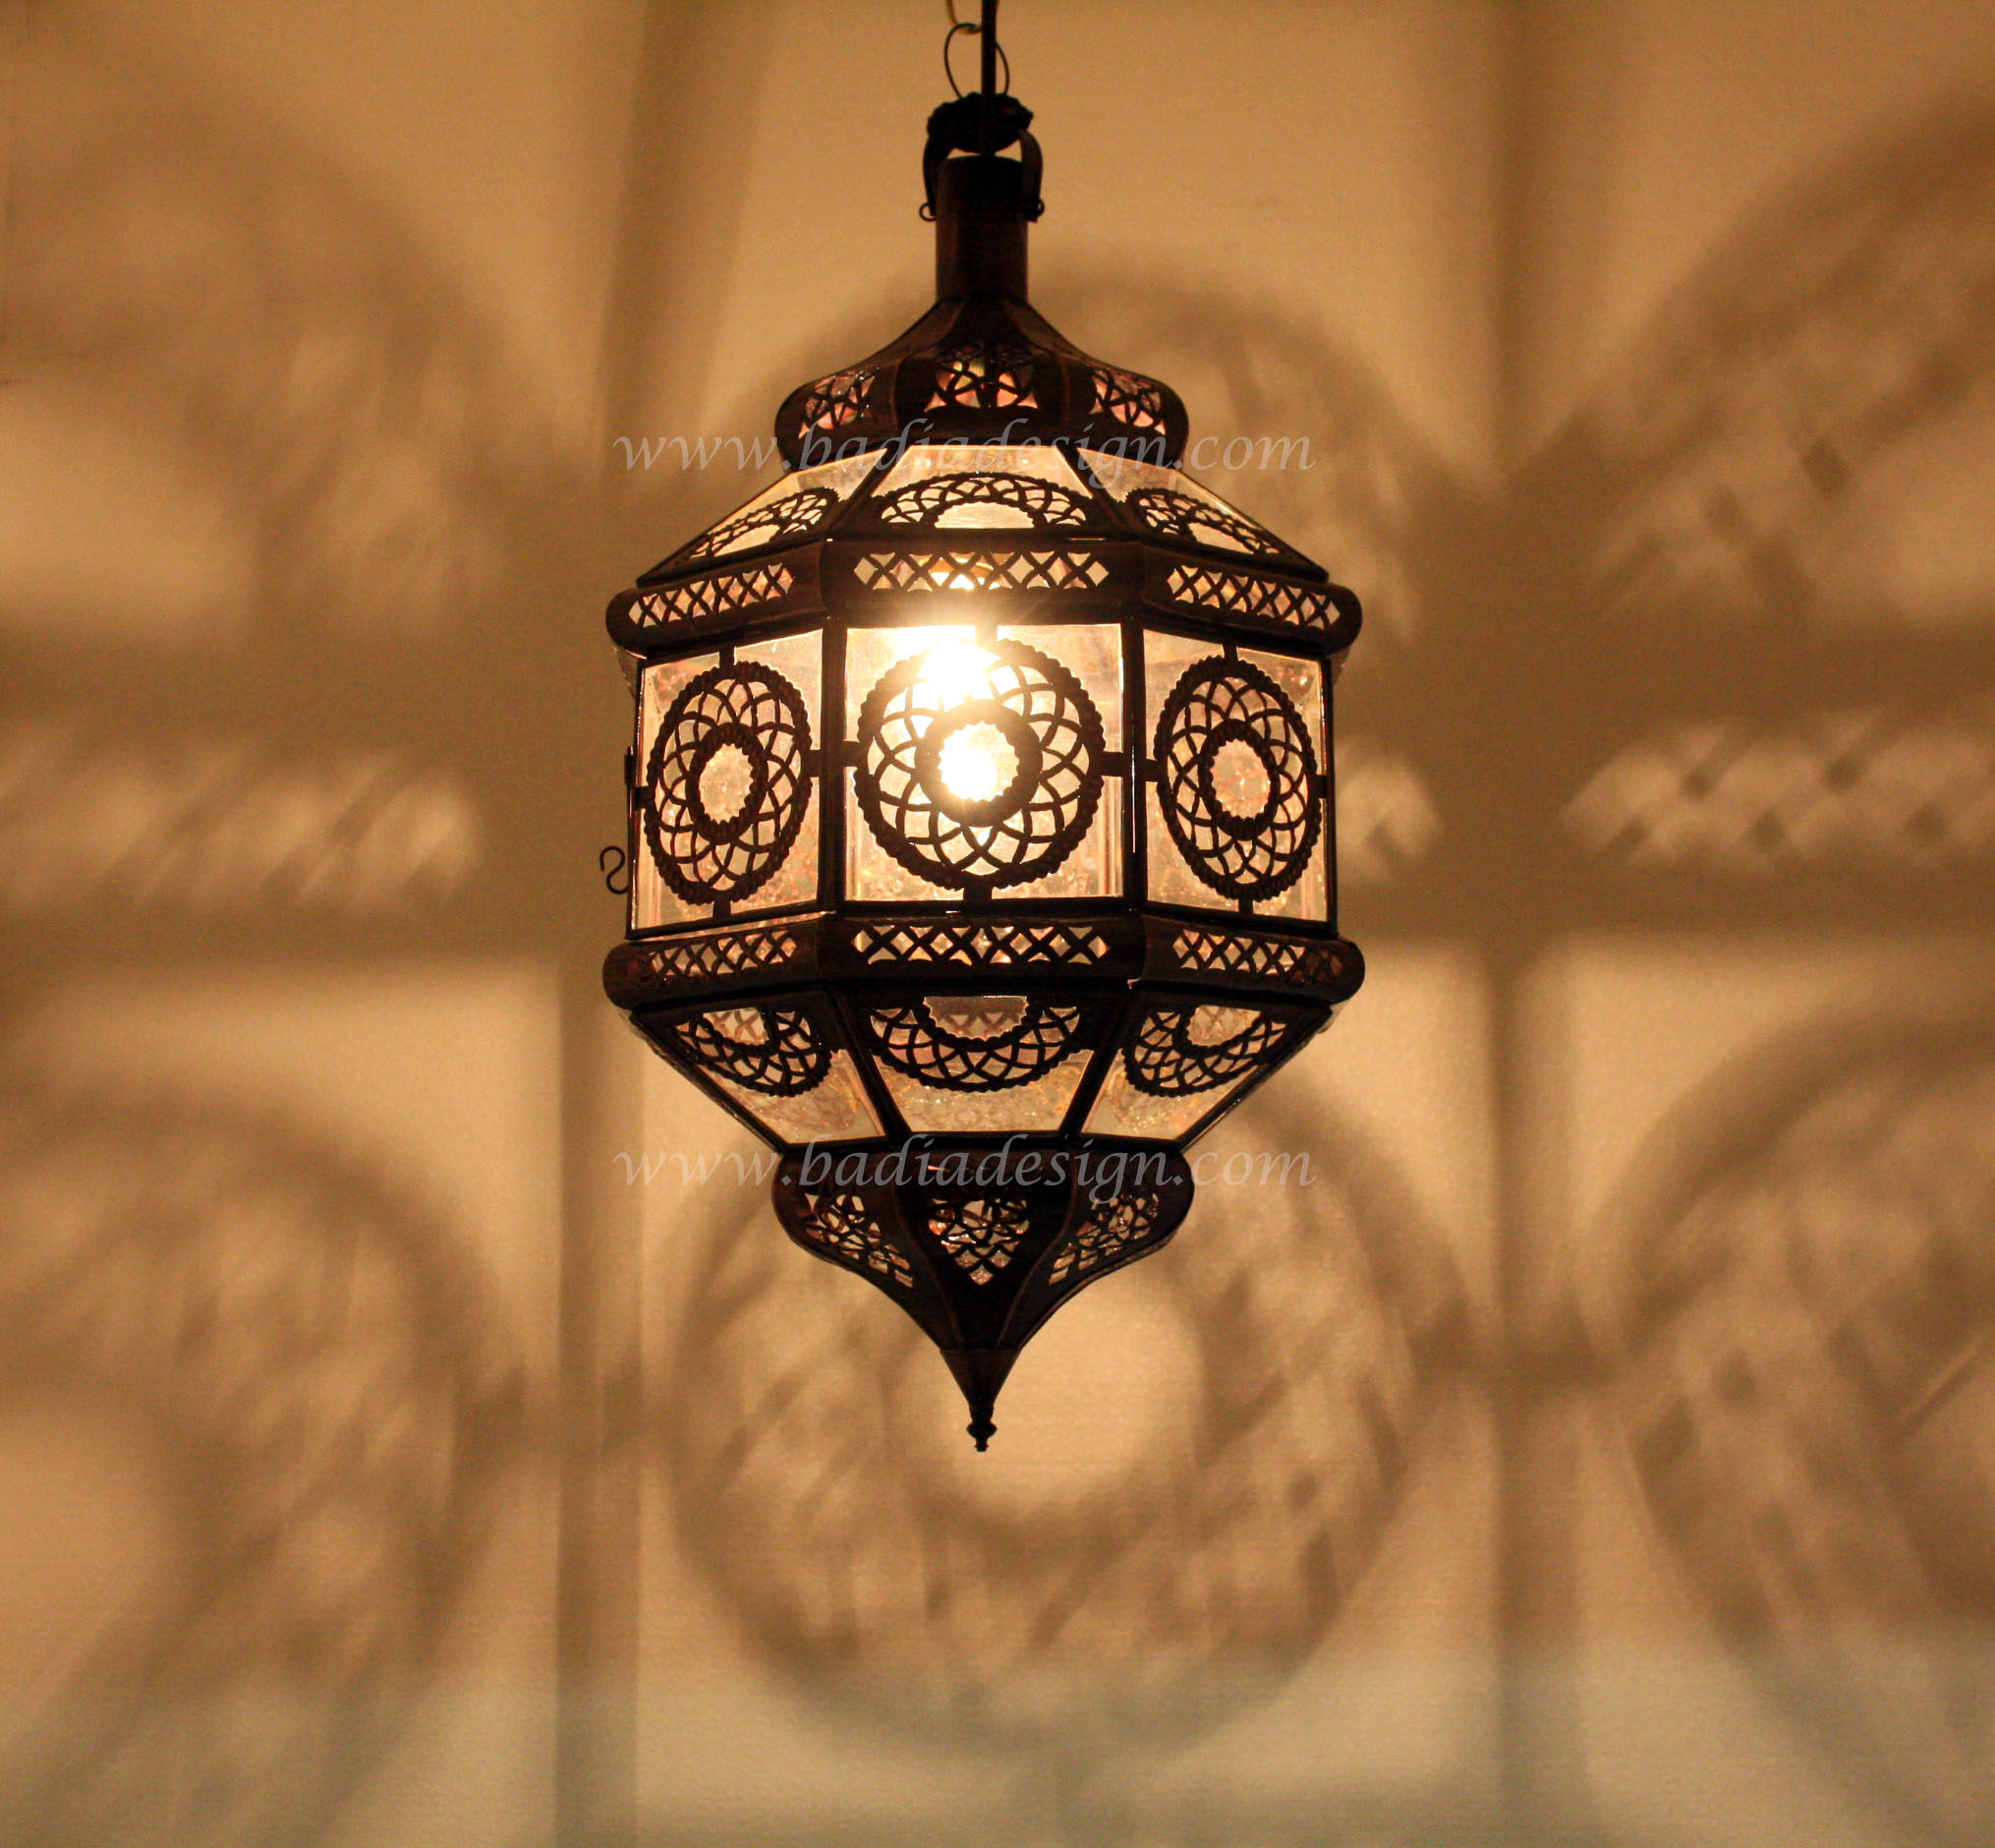 moroccan-interior-lighting-lig147-2.jpg